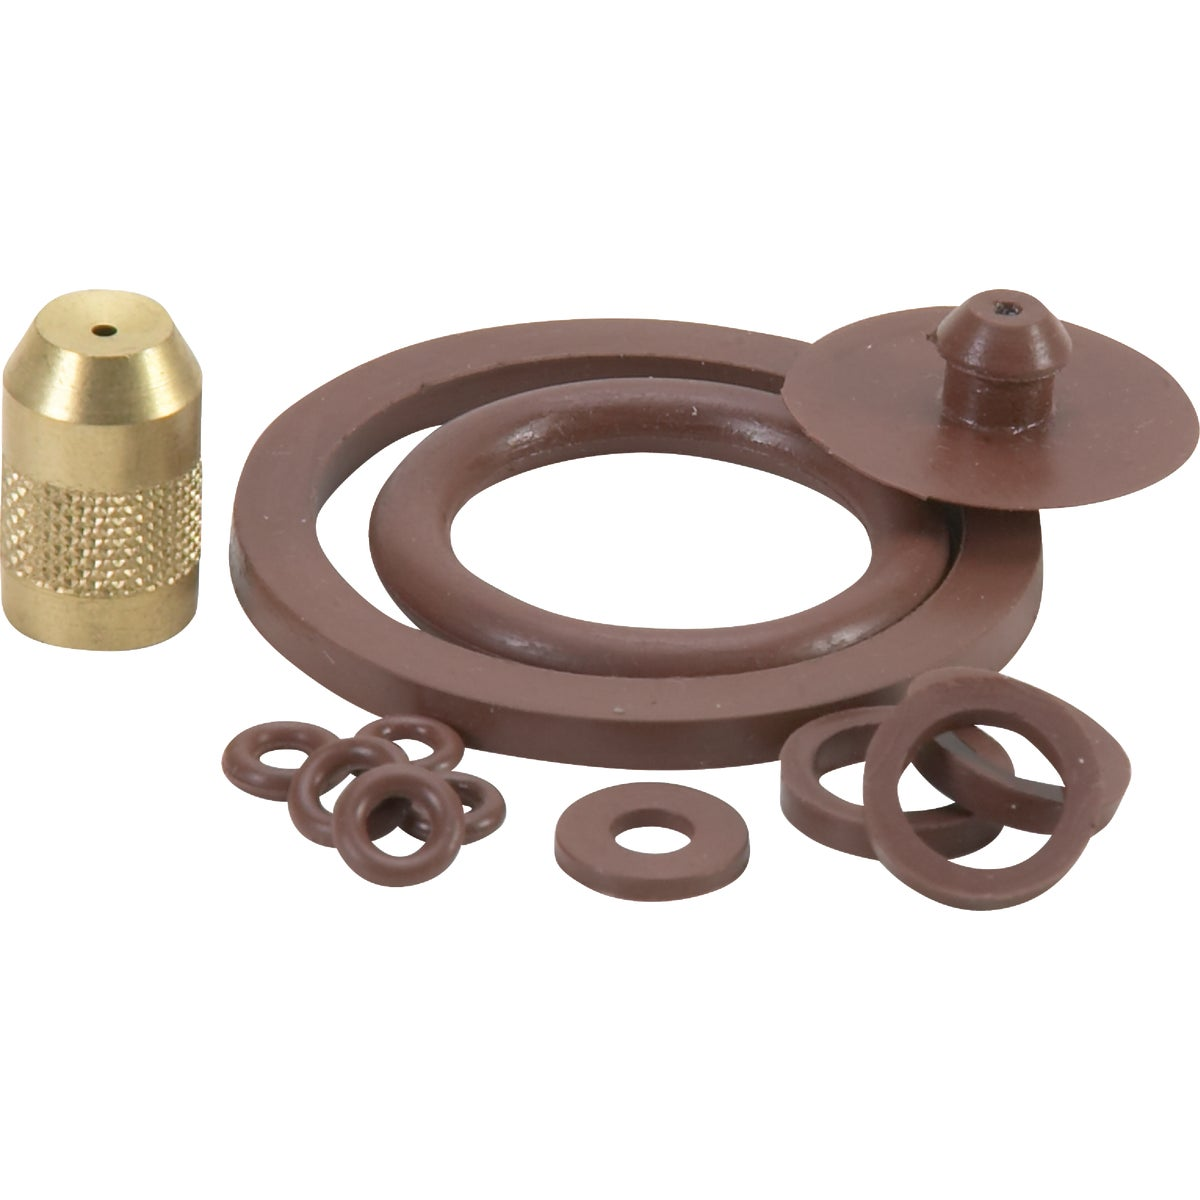 TANK SPRAYER PARTS KIT